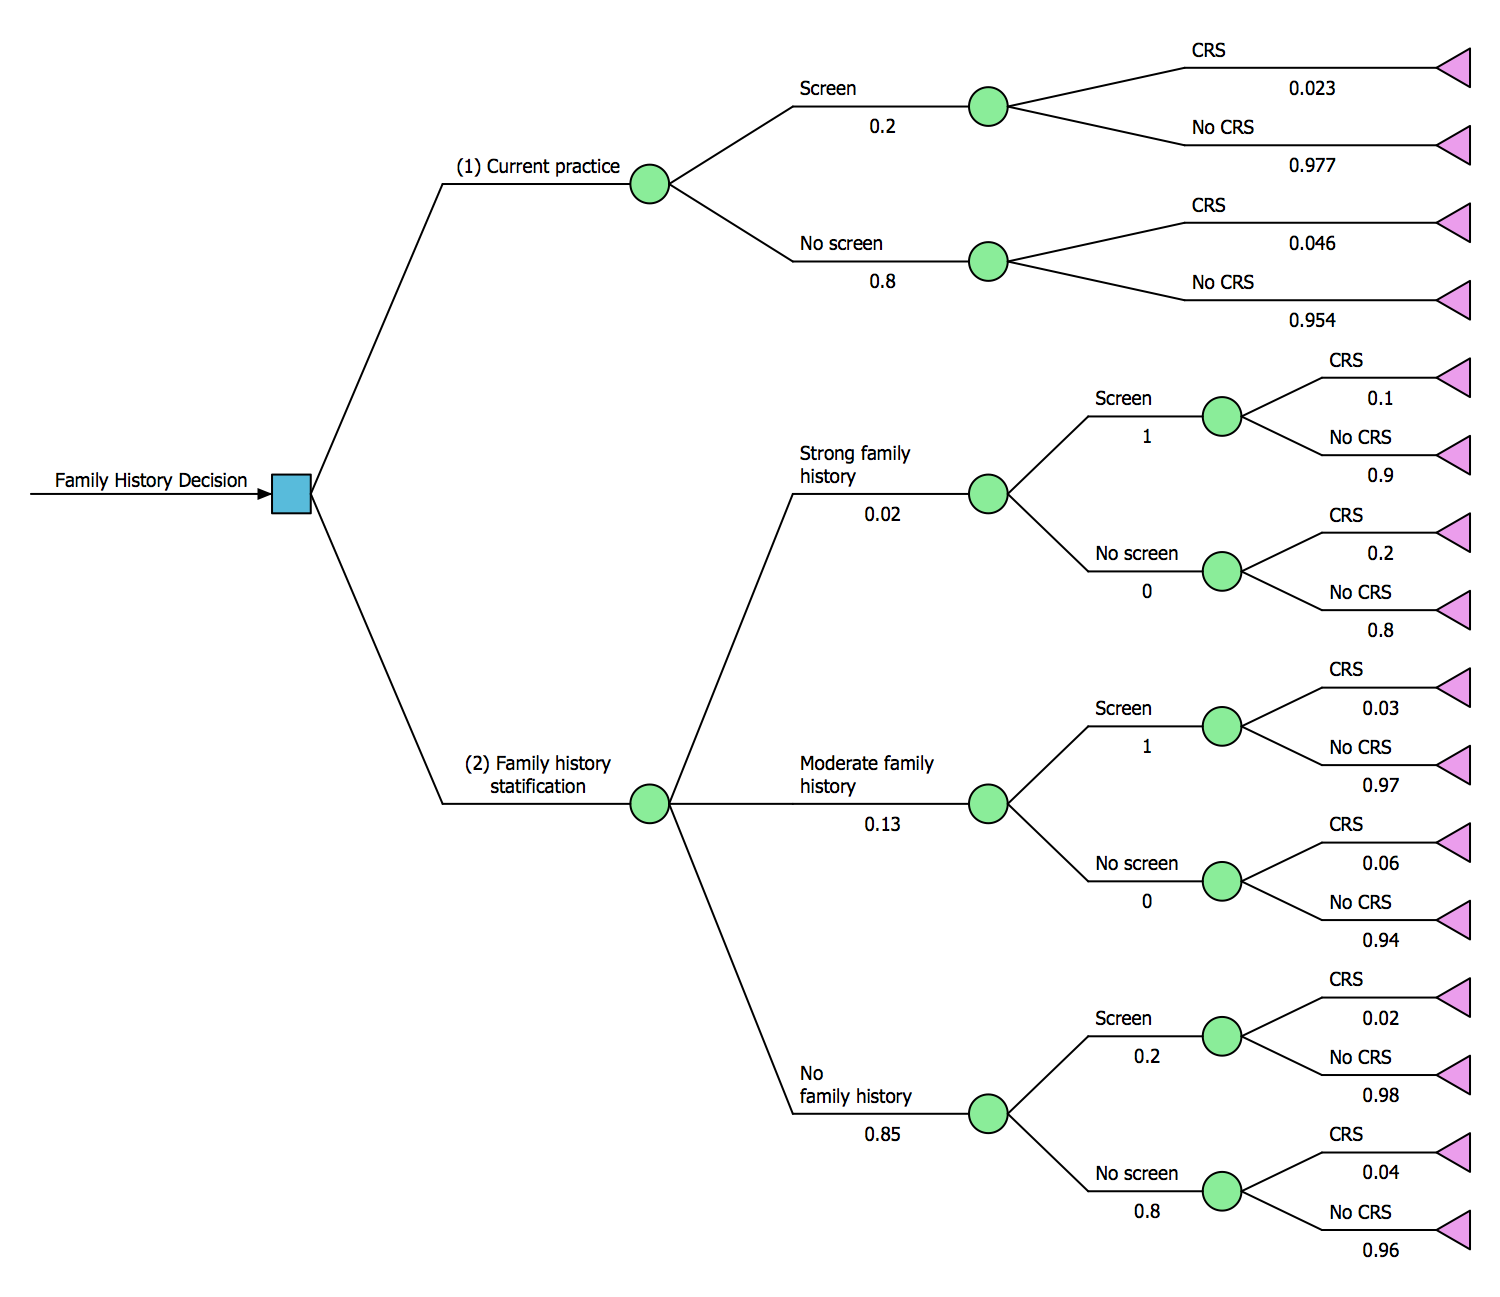 decision making solution conceptdraw com software tree diagram #2